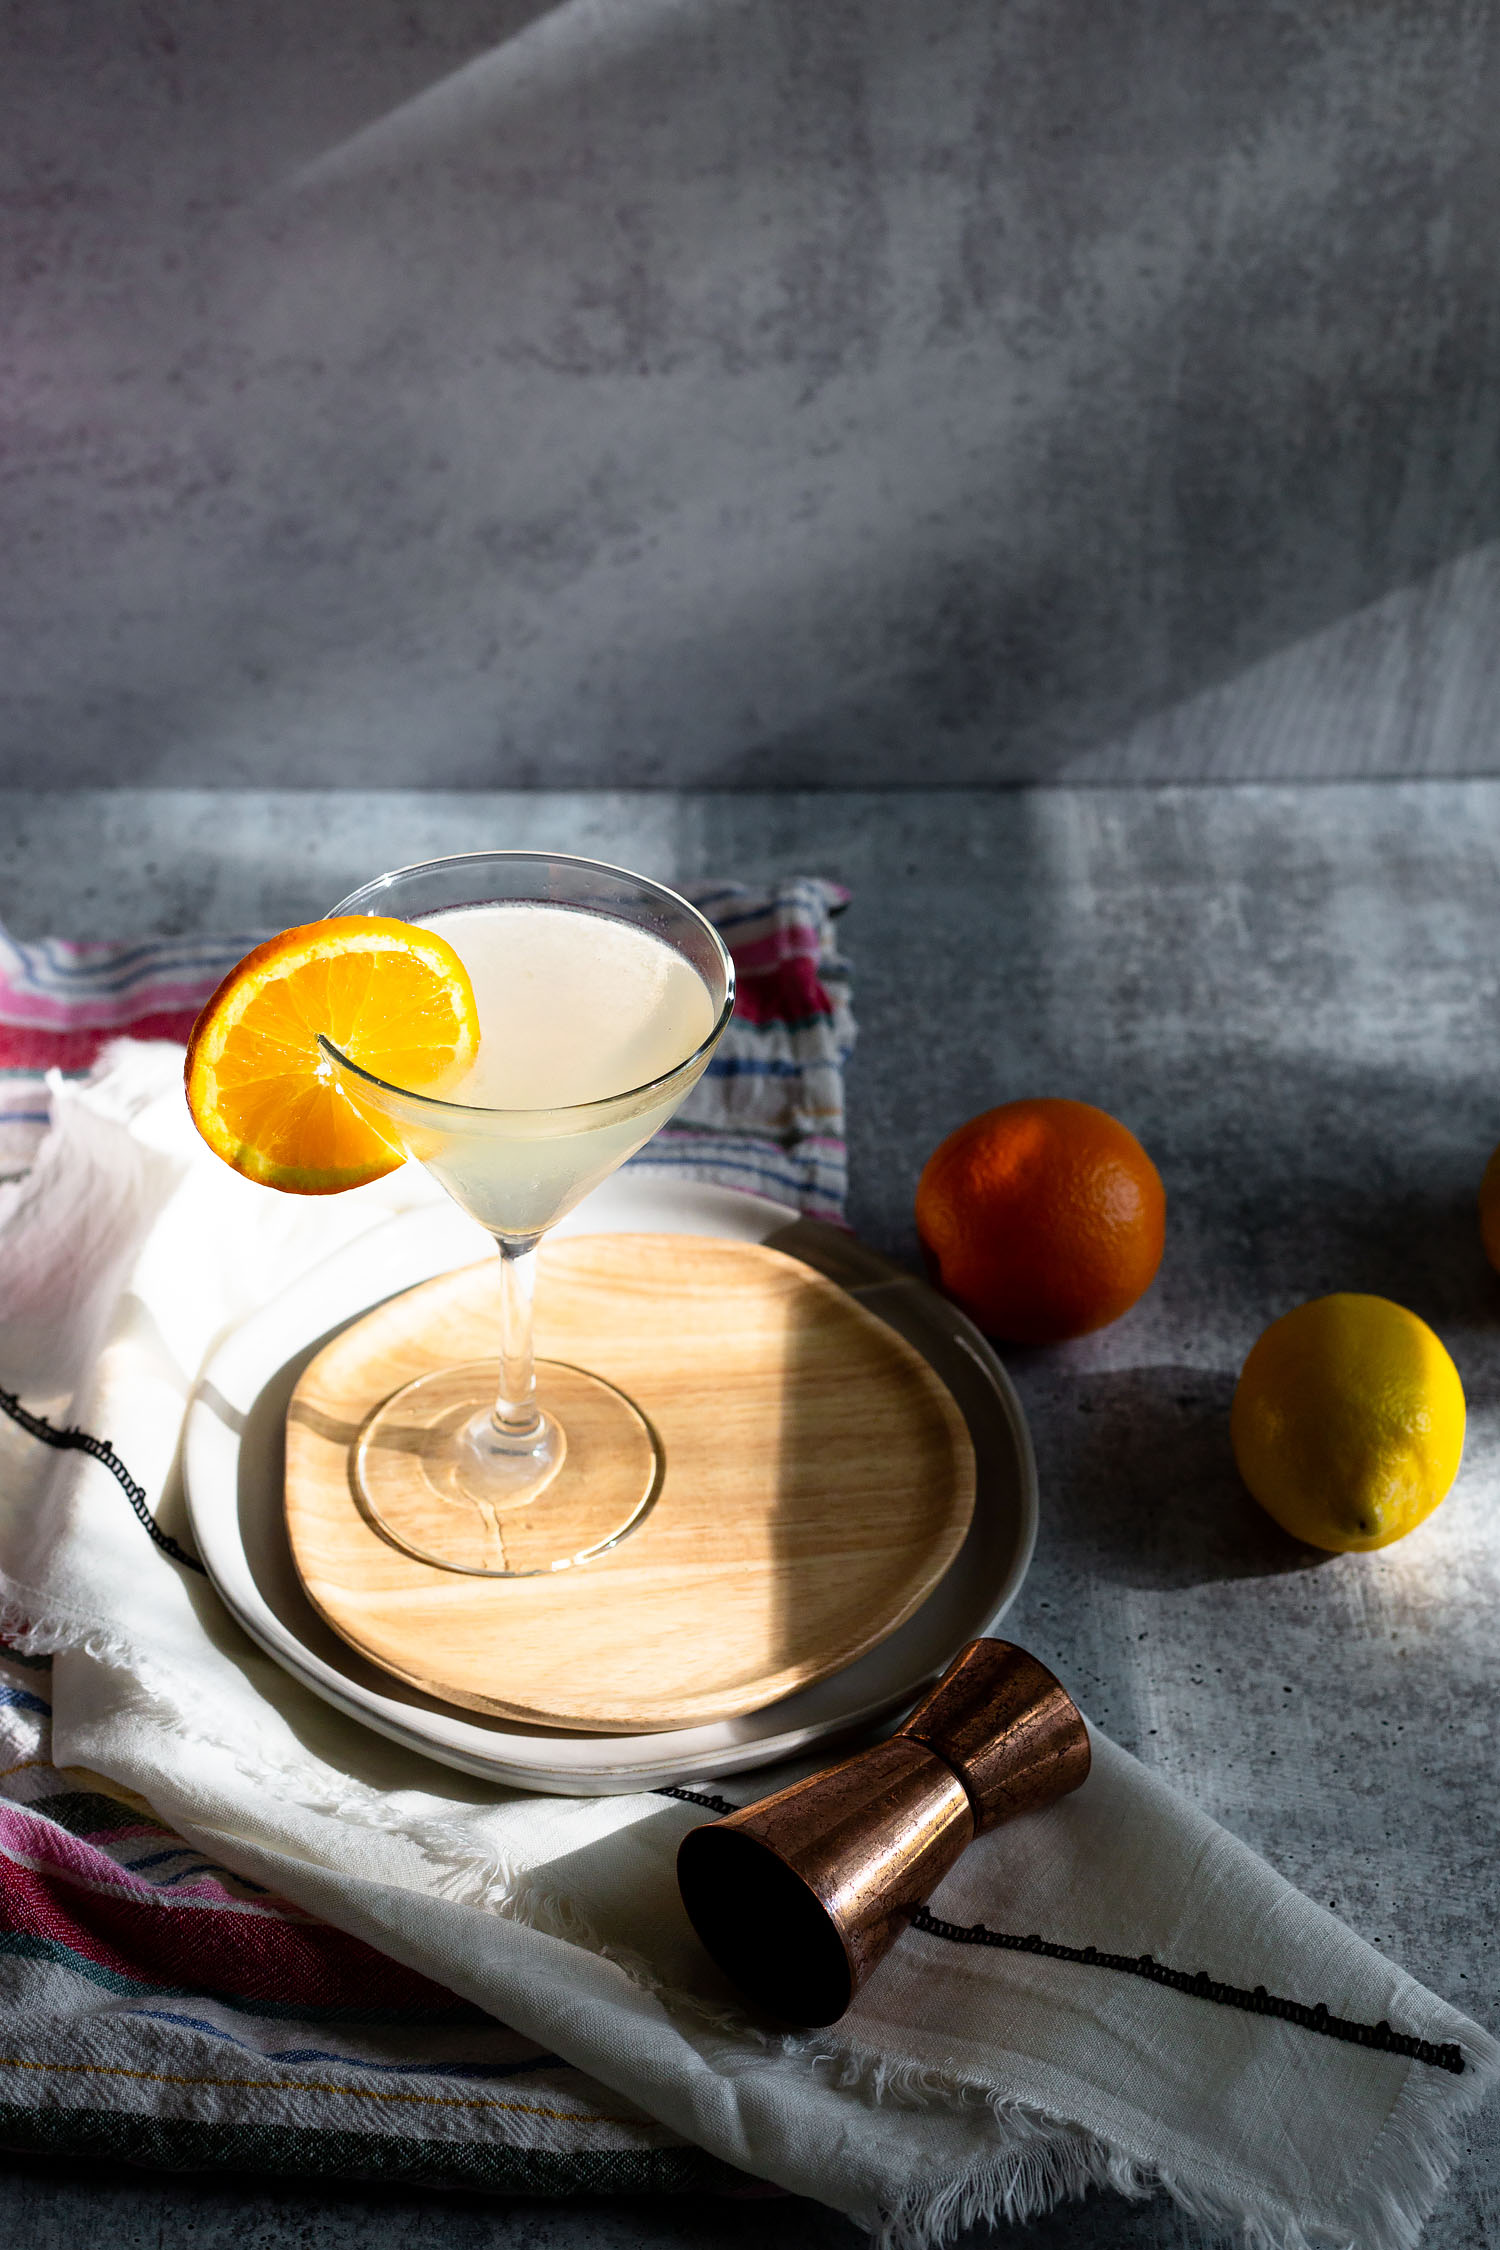 white lady cocktail with an orange slices